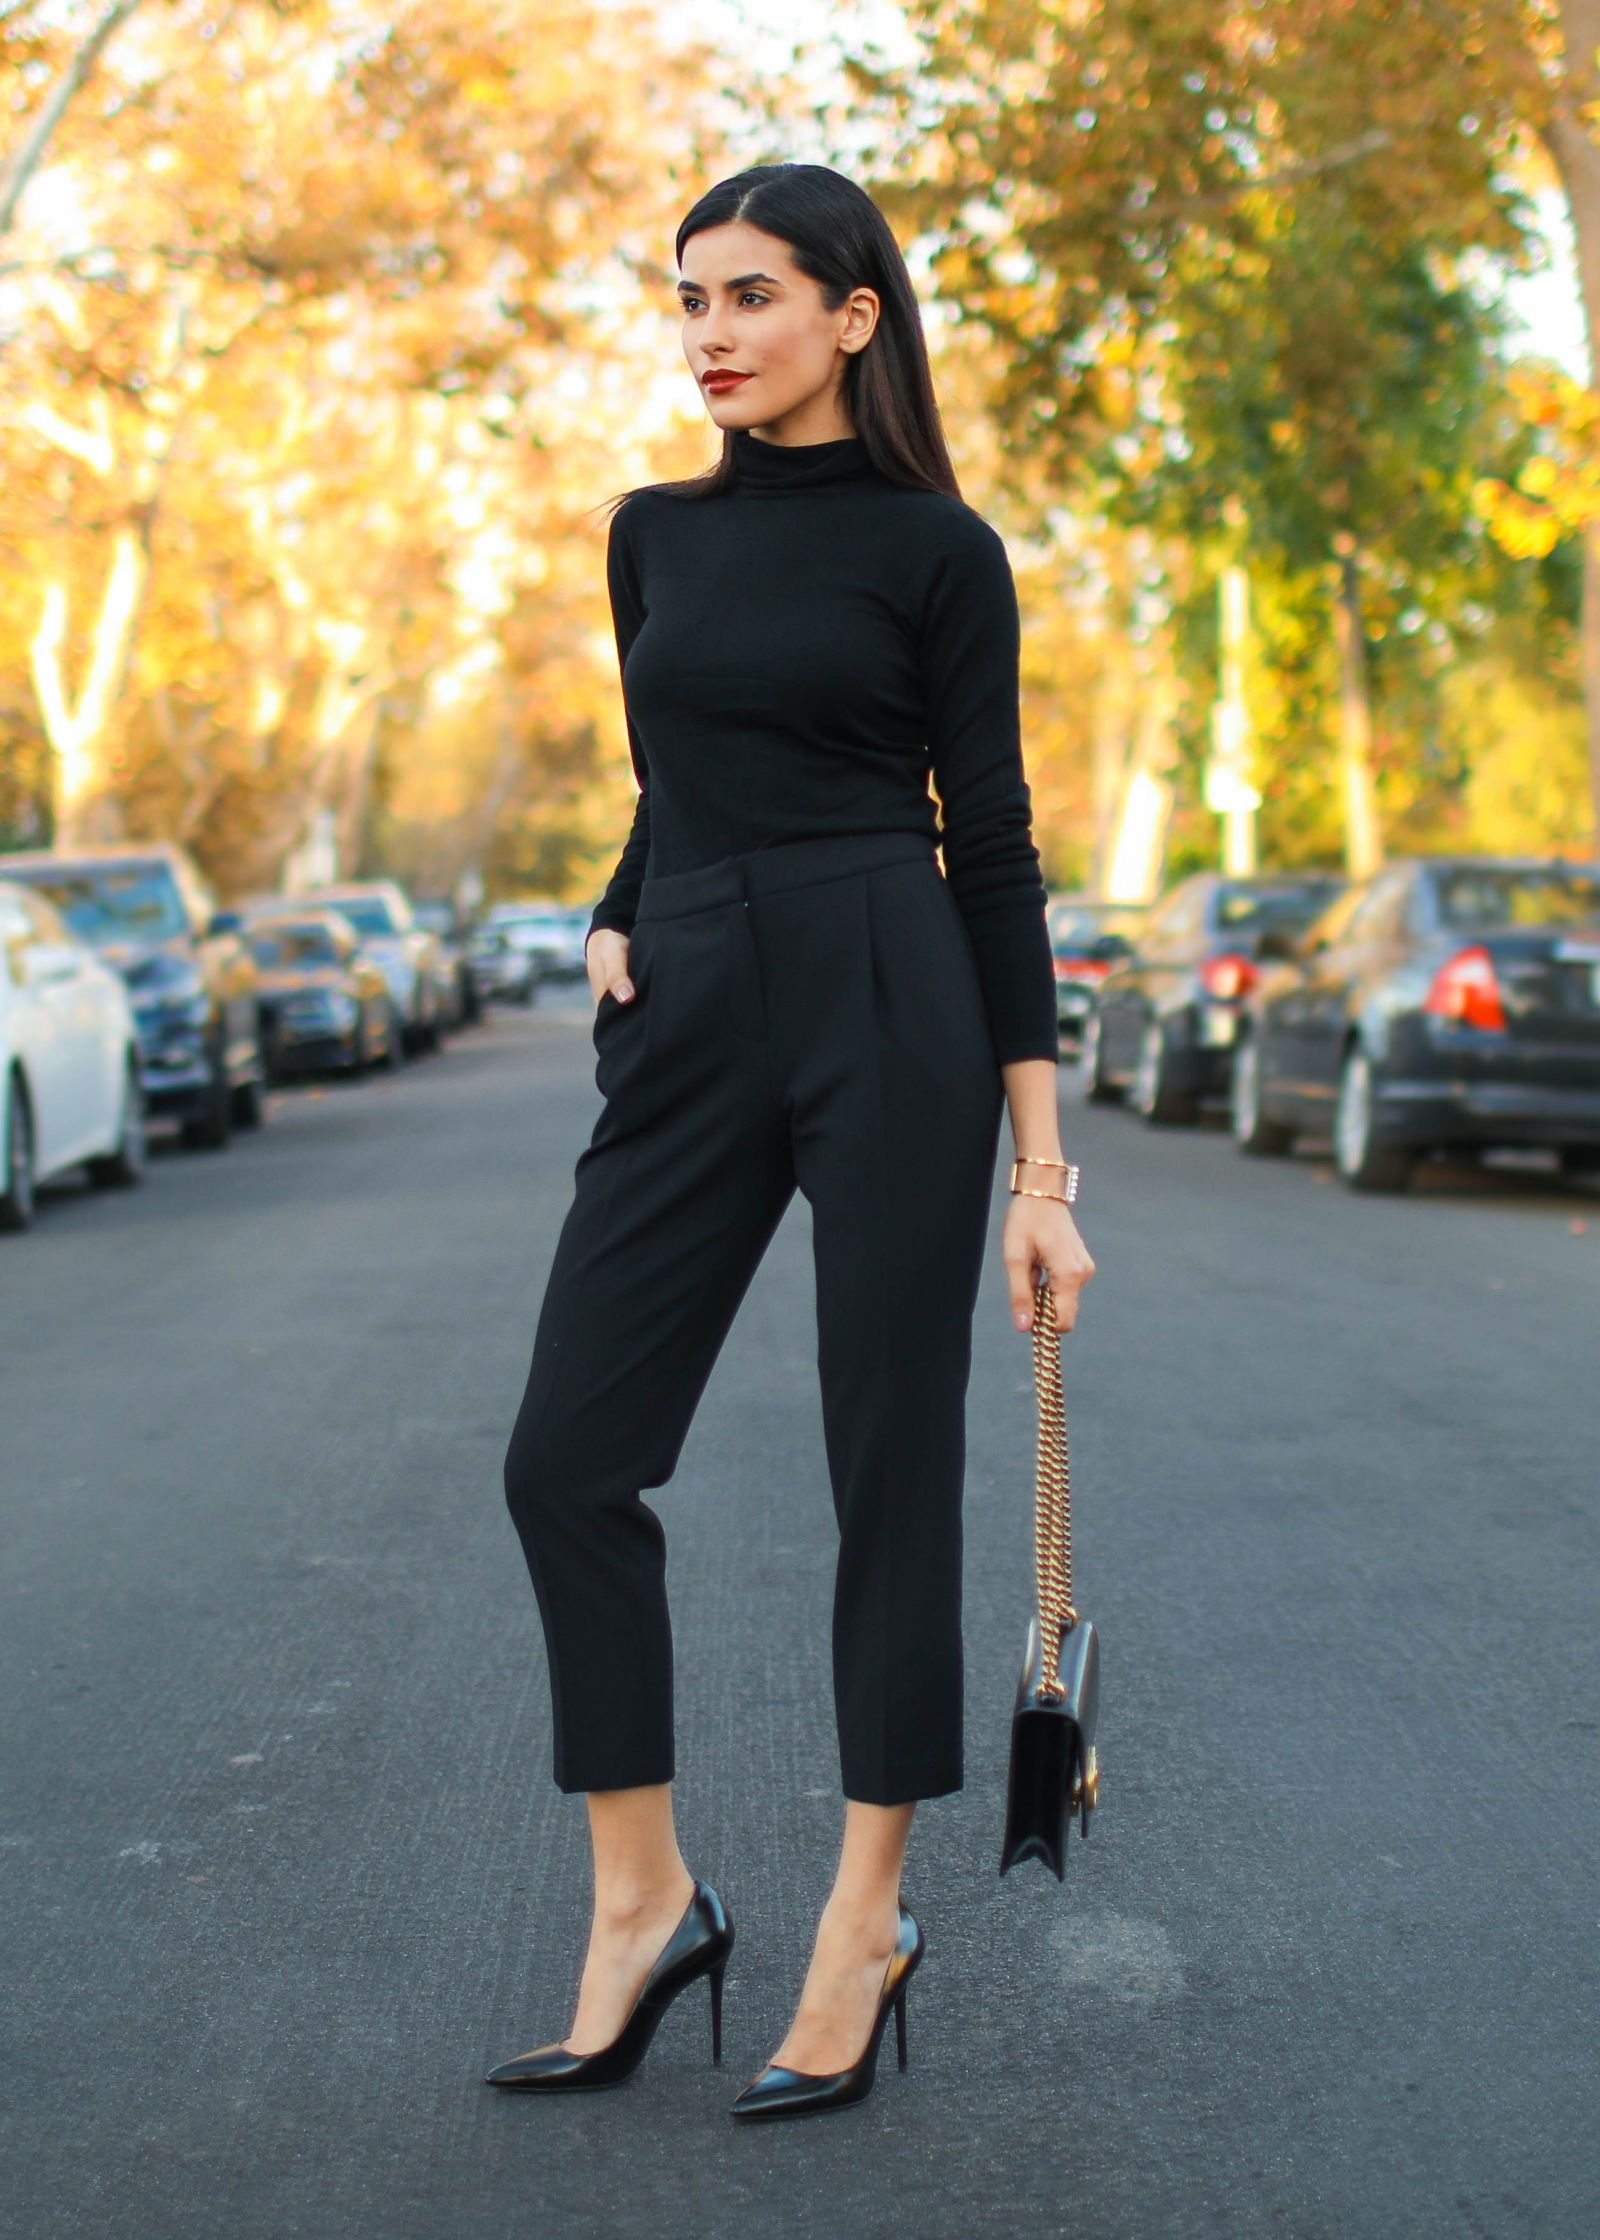 All Black Chic Minimalist